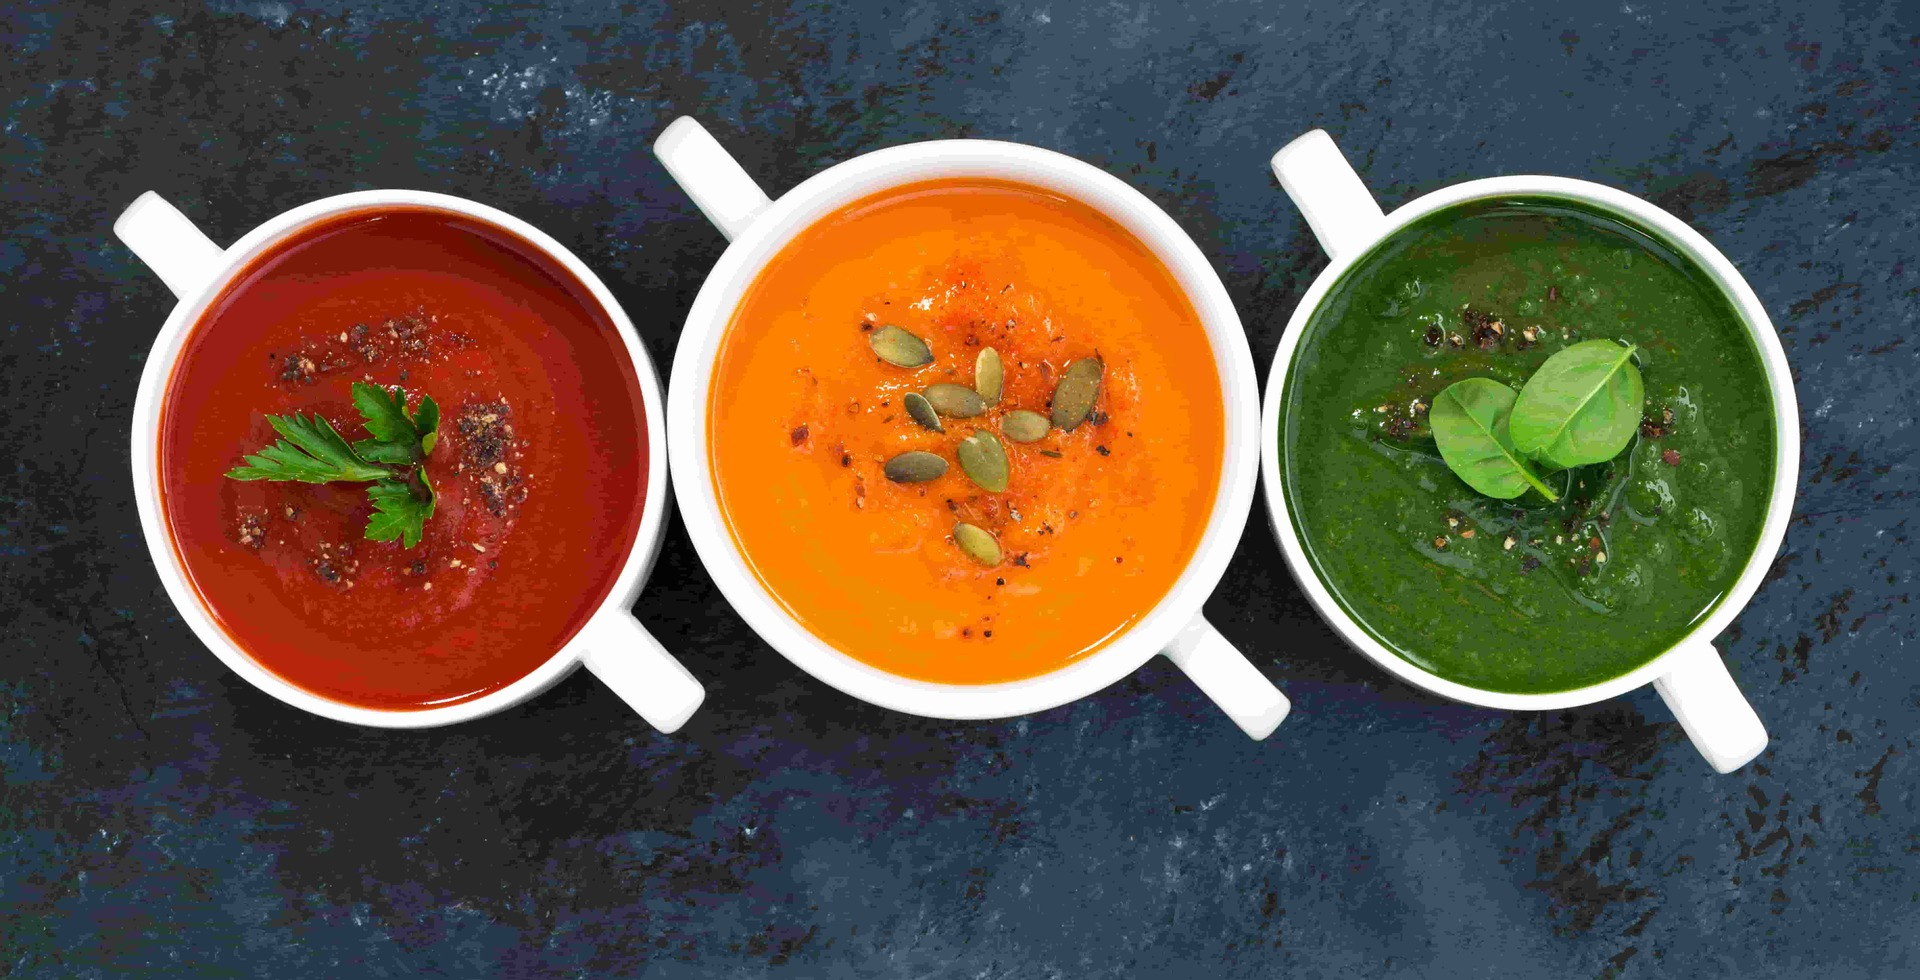 SOUP: A potential smorgasbord of anti-cancer nutrients!